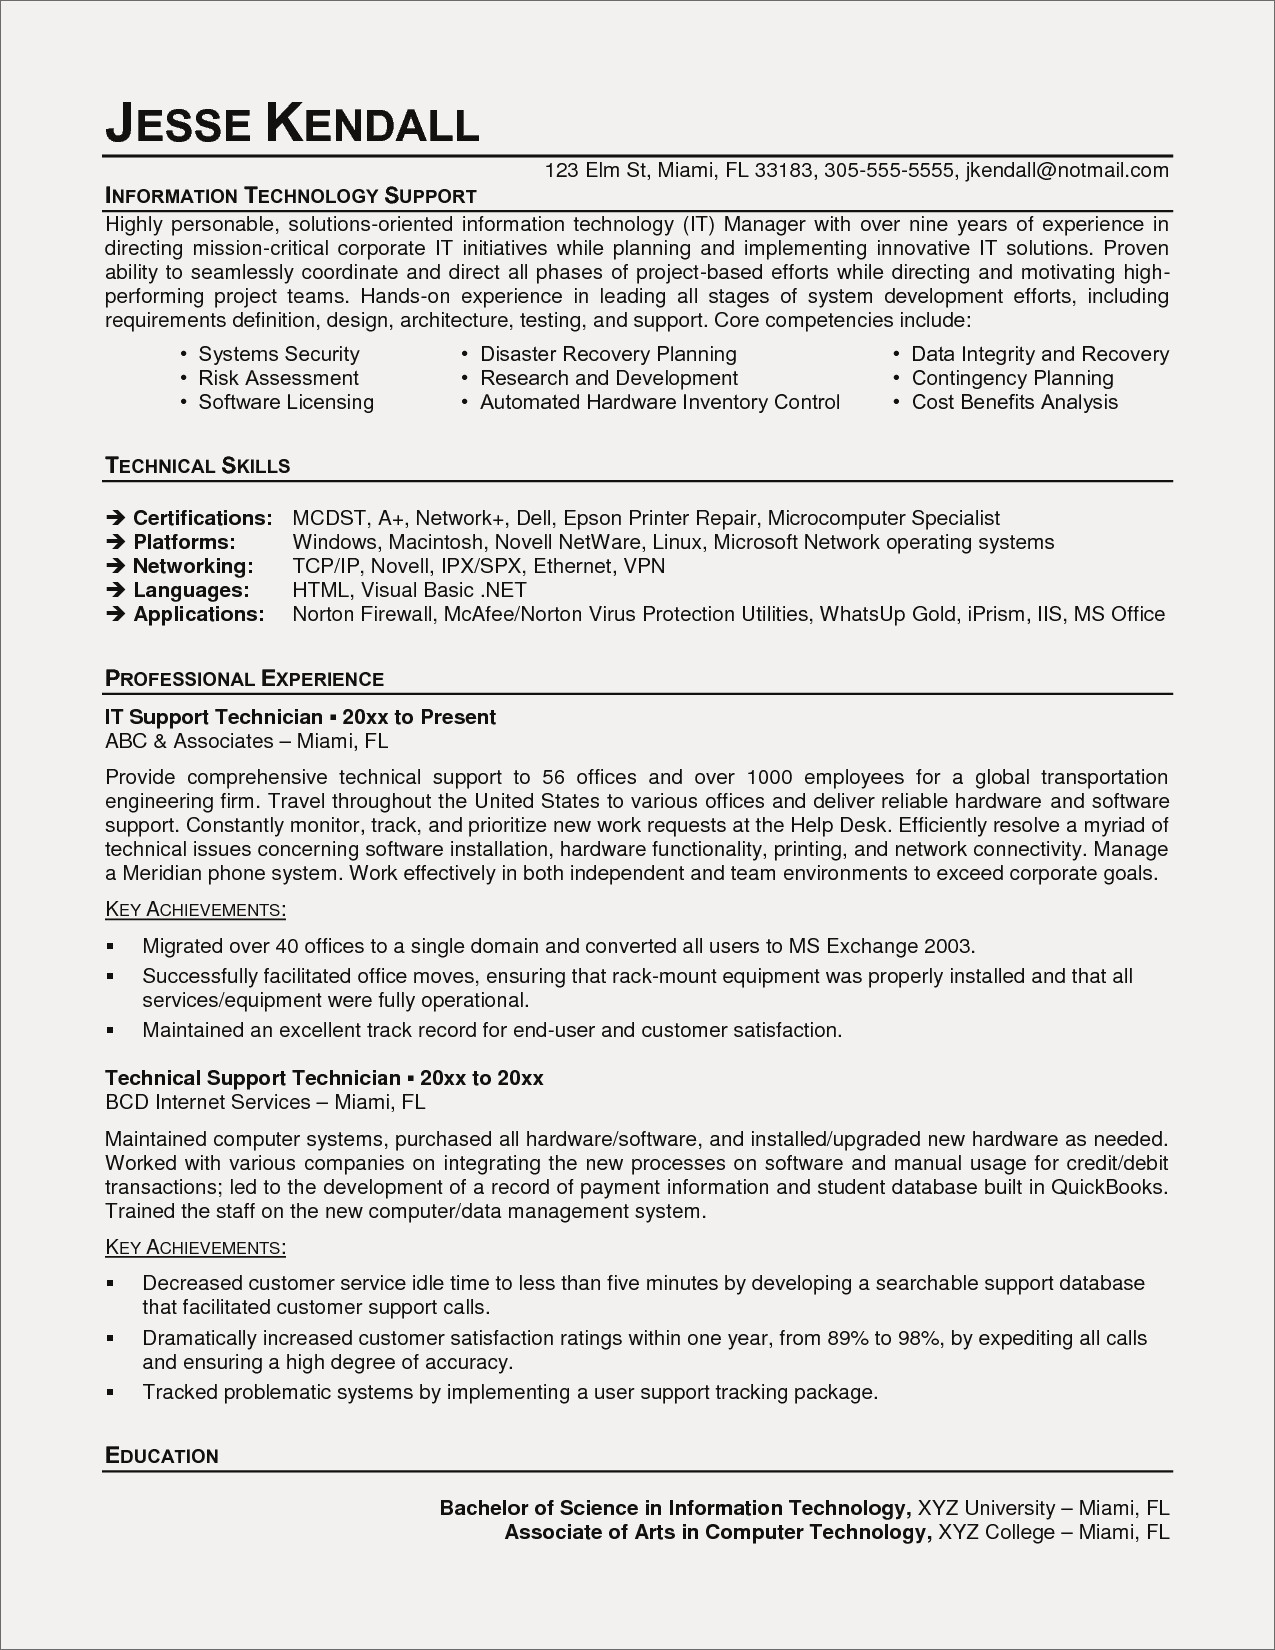 automotive resume template Collection-Auto Mechanic Resume American Resume Sample New Student Resume 0d 9-e